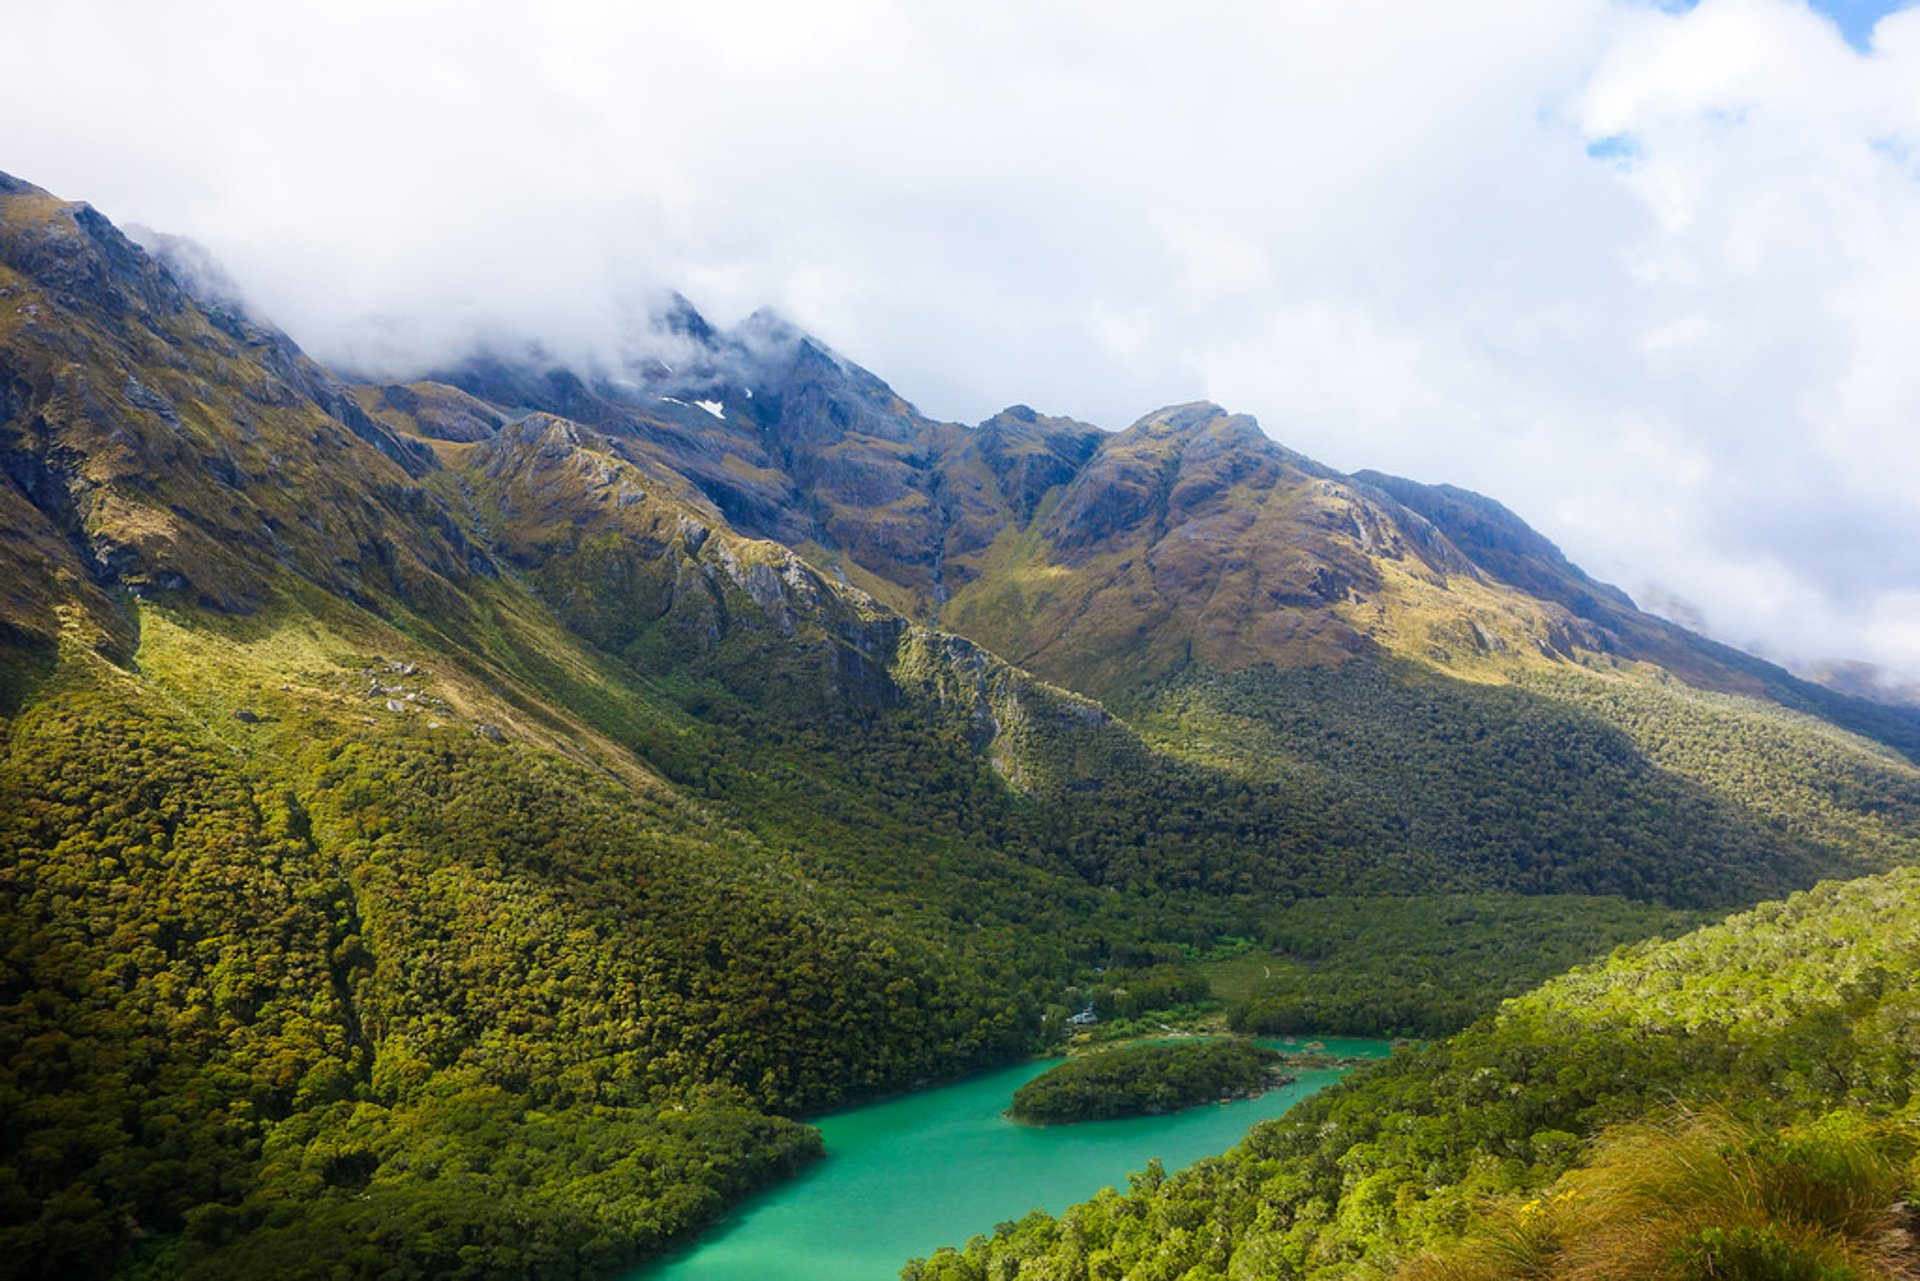 Blue Lake in New Zealand 2020 - Best Time